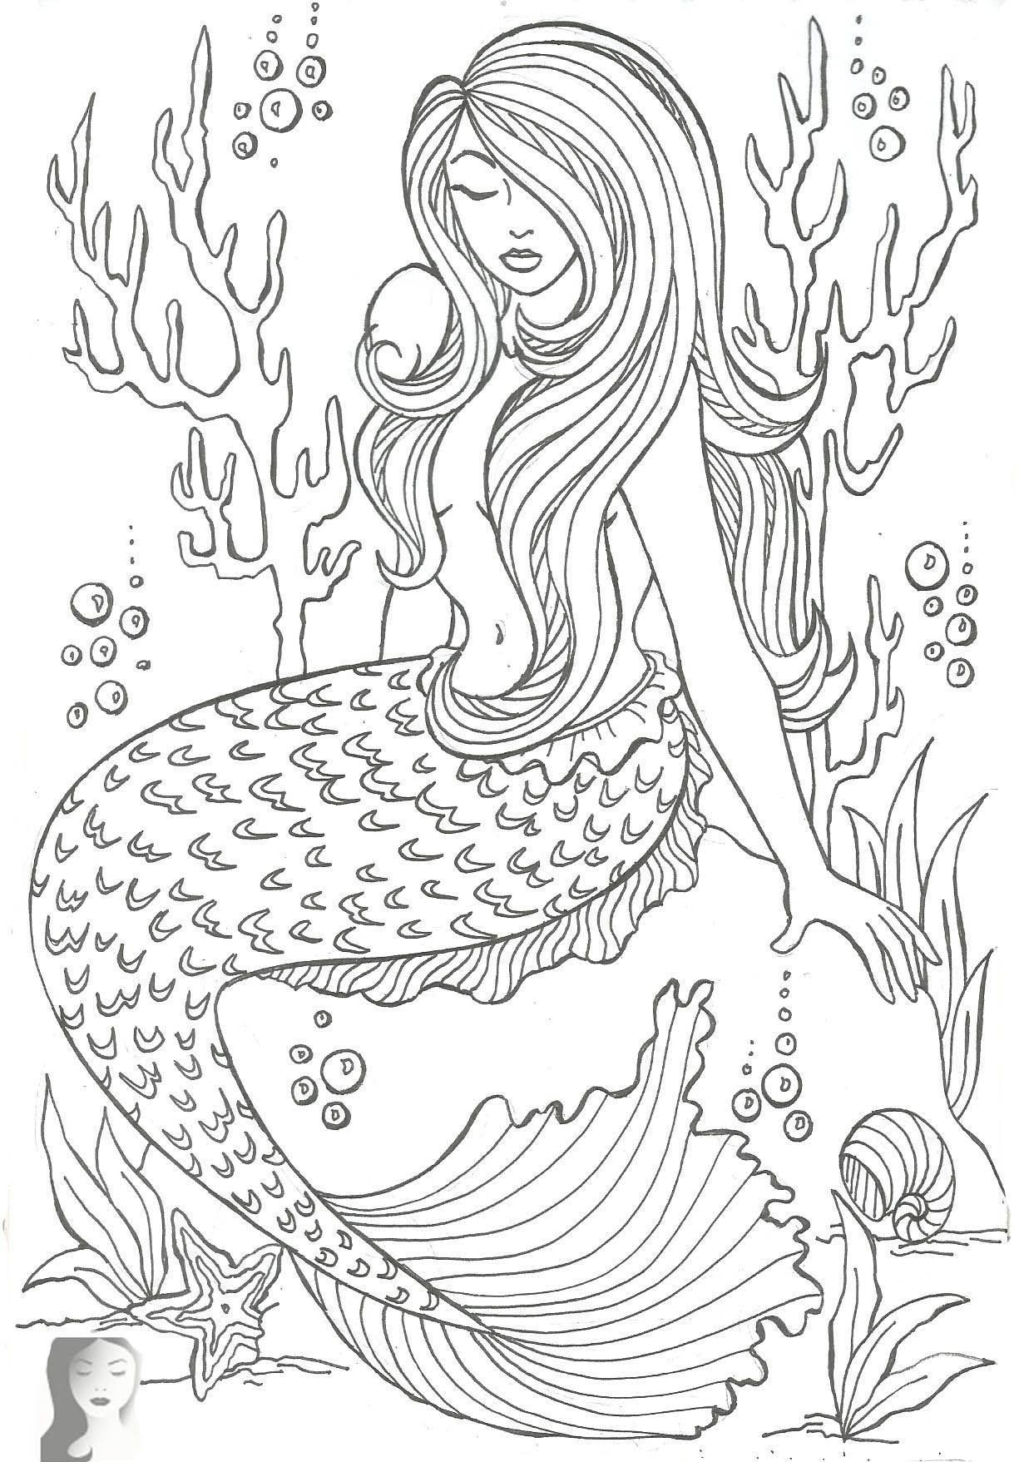 Coloring Book World ~ Printable Mermaid Pictures Real Life Fish - Free Printable Mermaid Coloring Pages For Adults